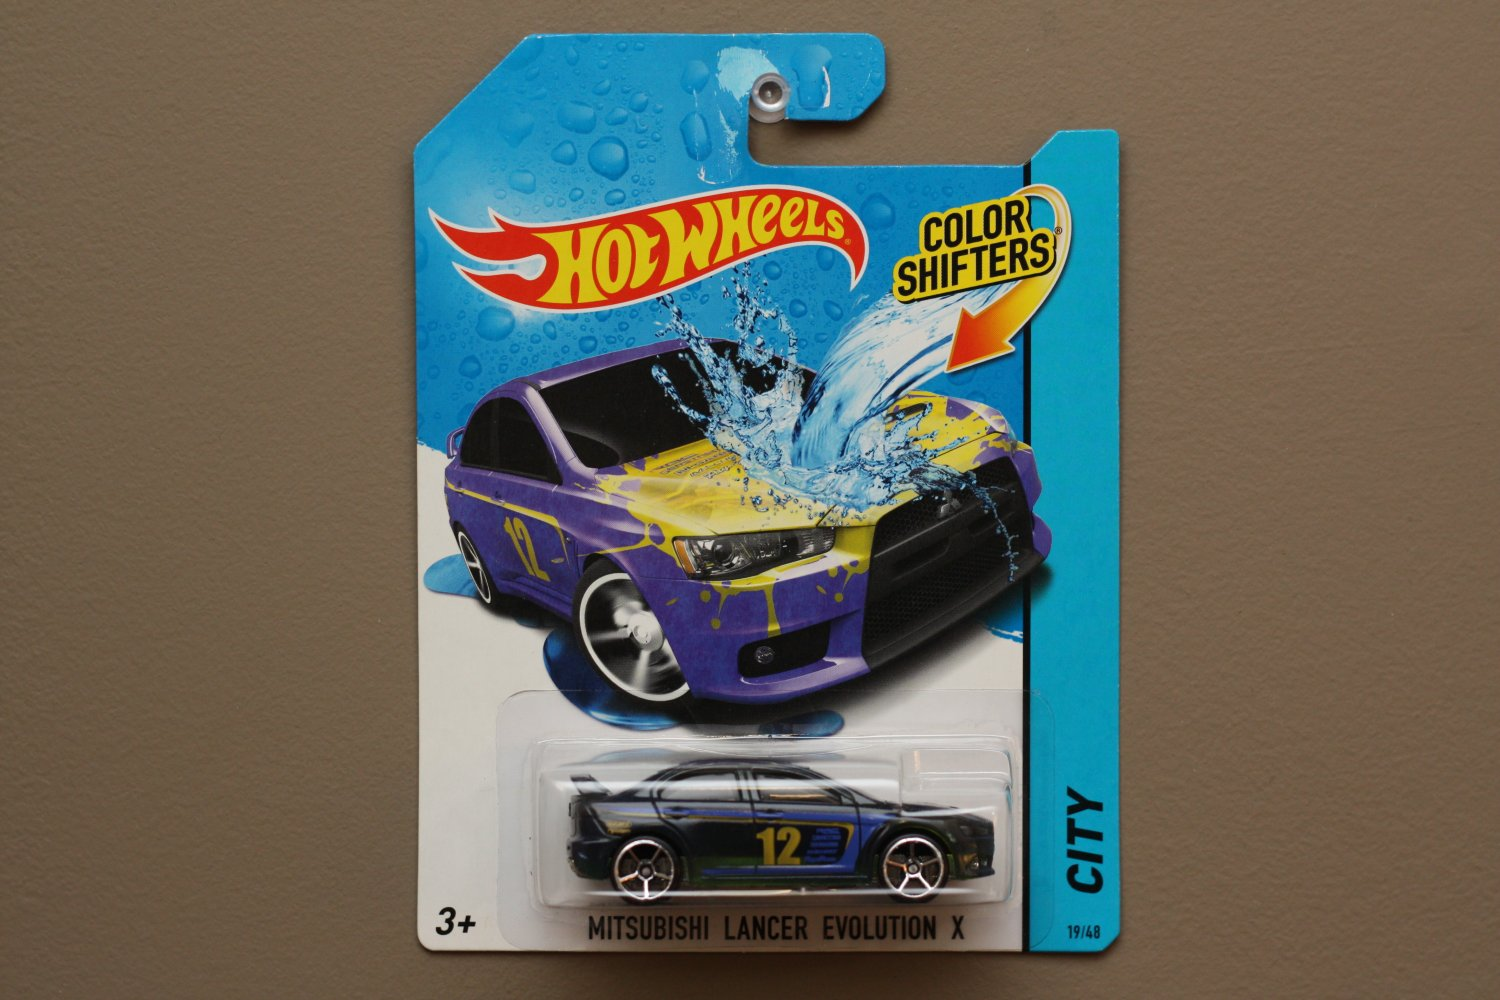 Hot Wheels 2014 Color Shifters Mitsubishi Lancer Evolution X (purple to yellow) (SEE CONDITION)